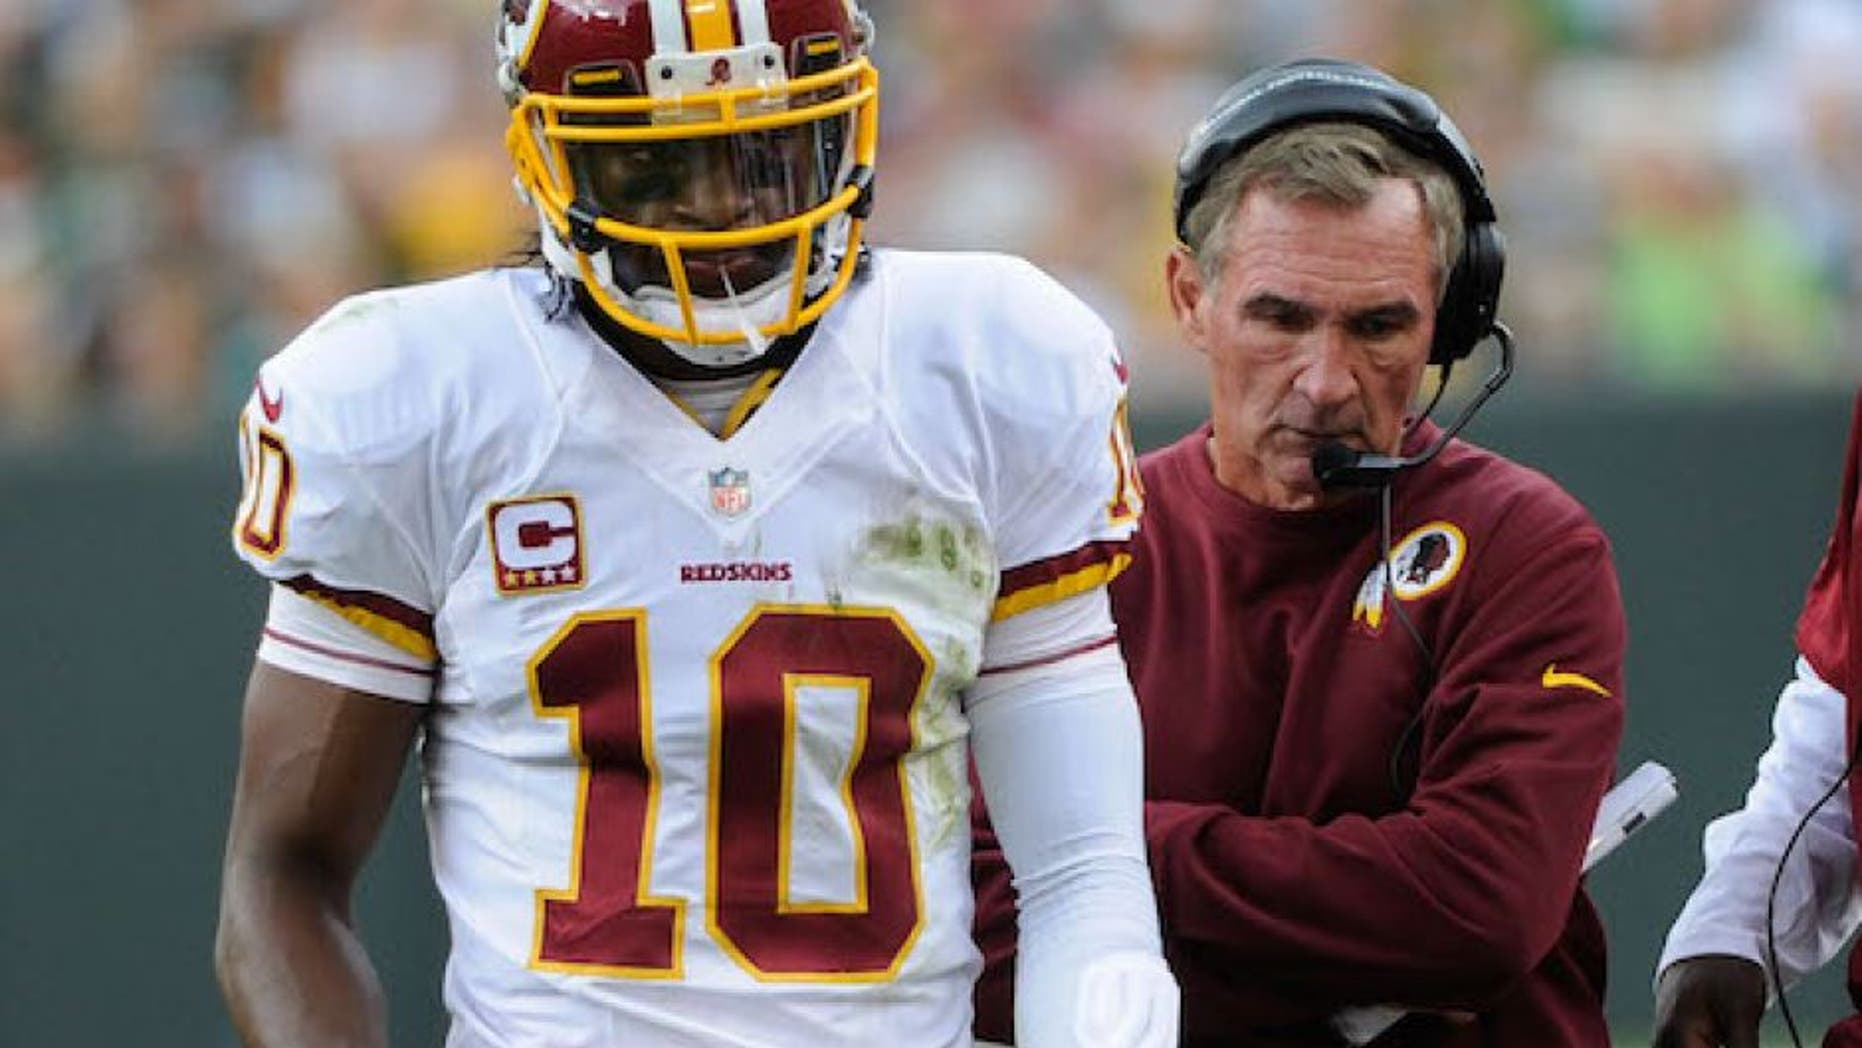 Sep 15, 2013; Green Bay, WI, USA; Washington Redskins quarterback Robert Griffin III (10) and head coach Mike Shanahan walk on the sidelines during the game against the Green Bay Packers in the third quarter at Lambeau Field. Mandatory Credit: Benny Sieu-USA TODAY Sports